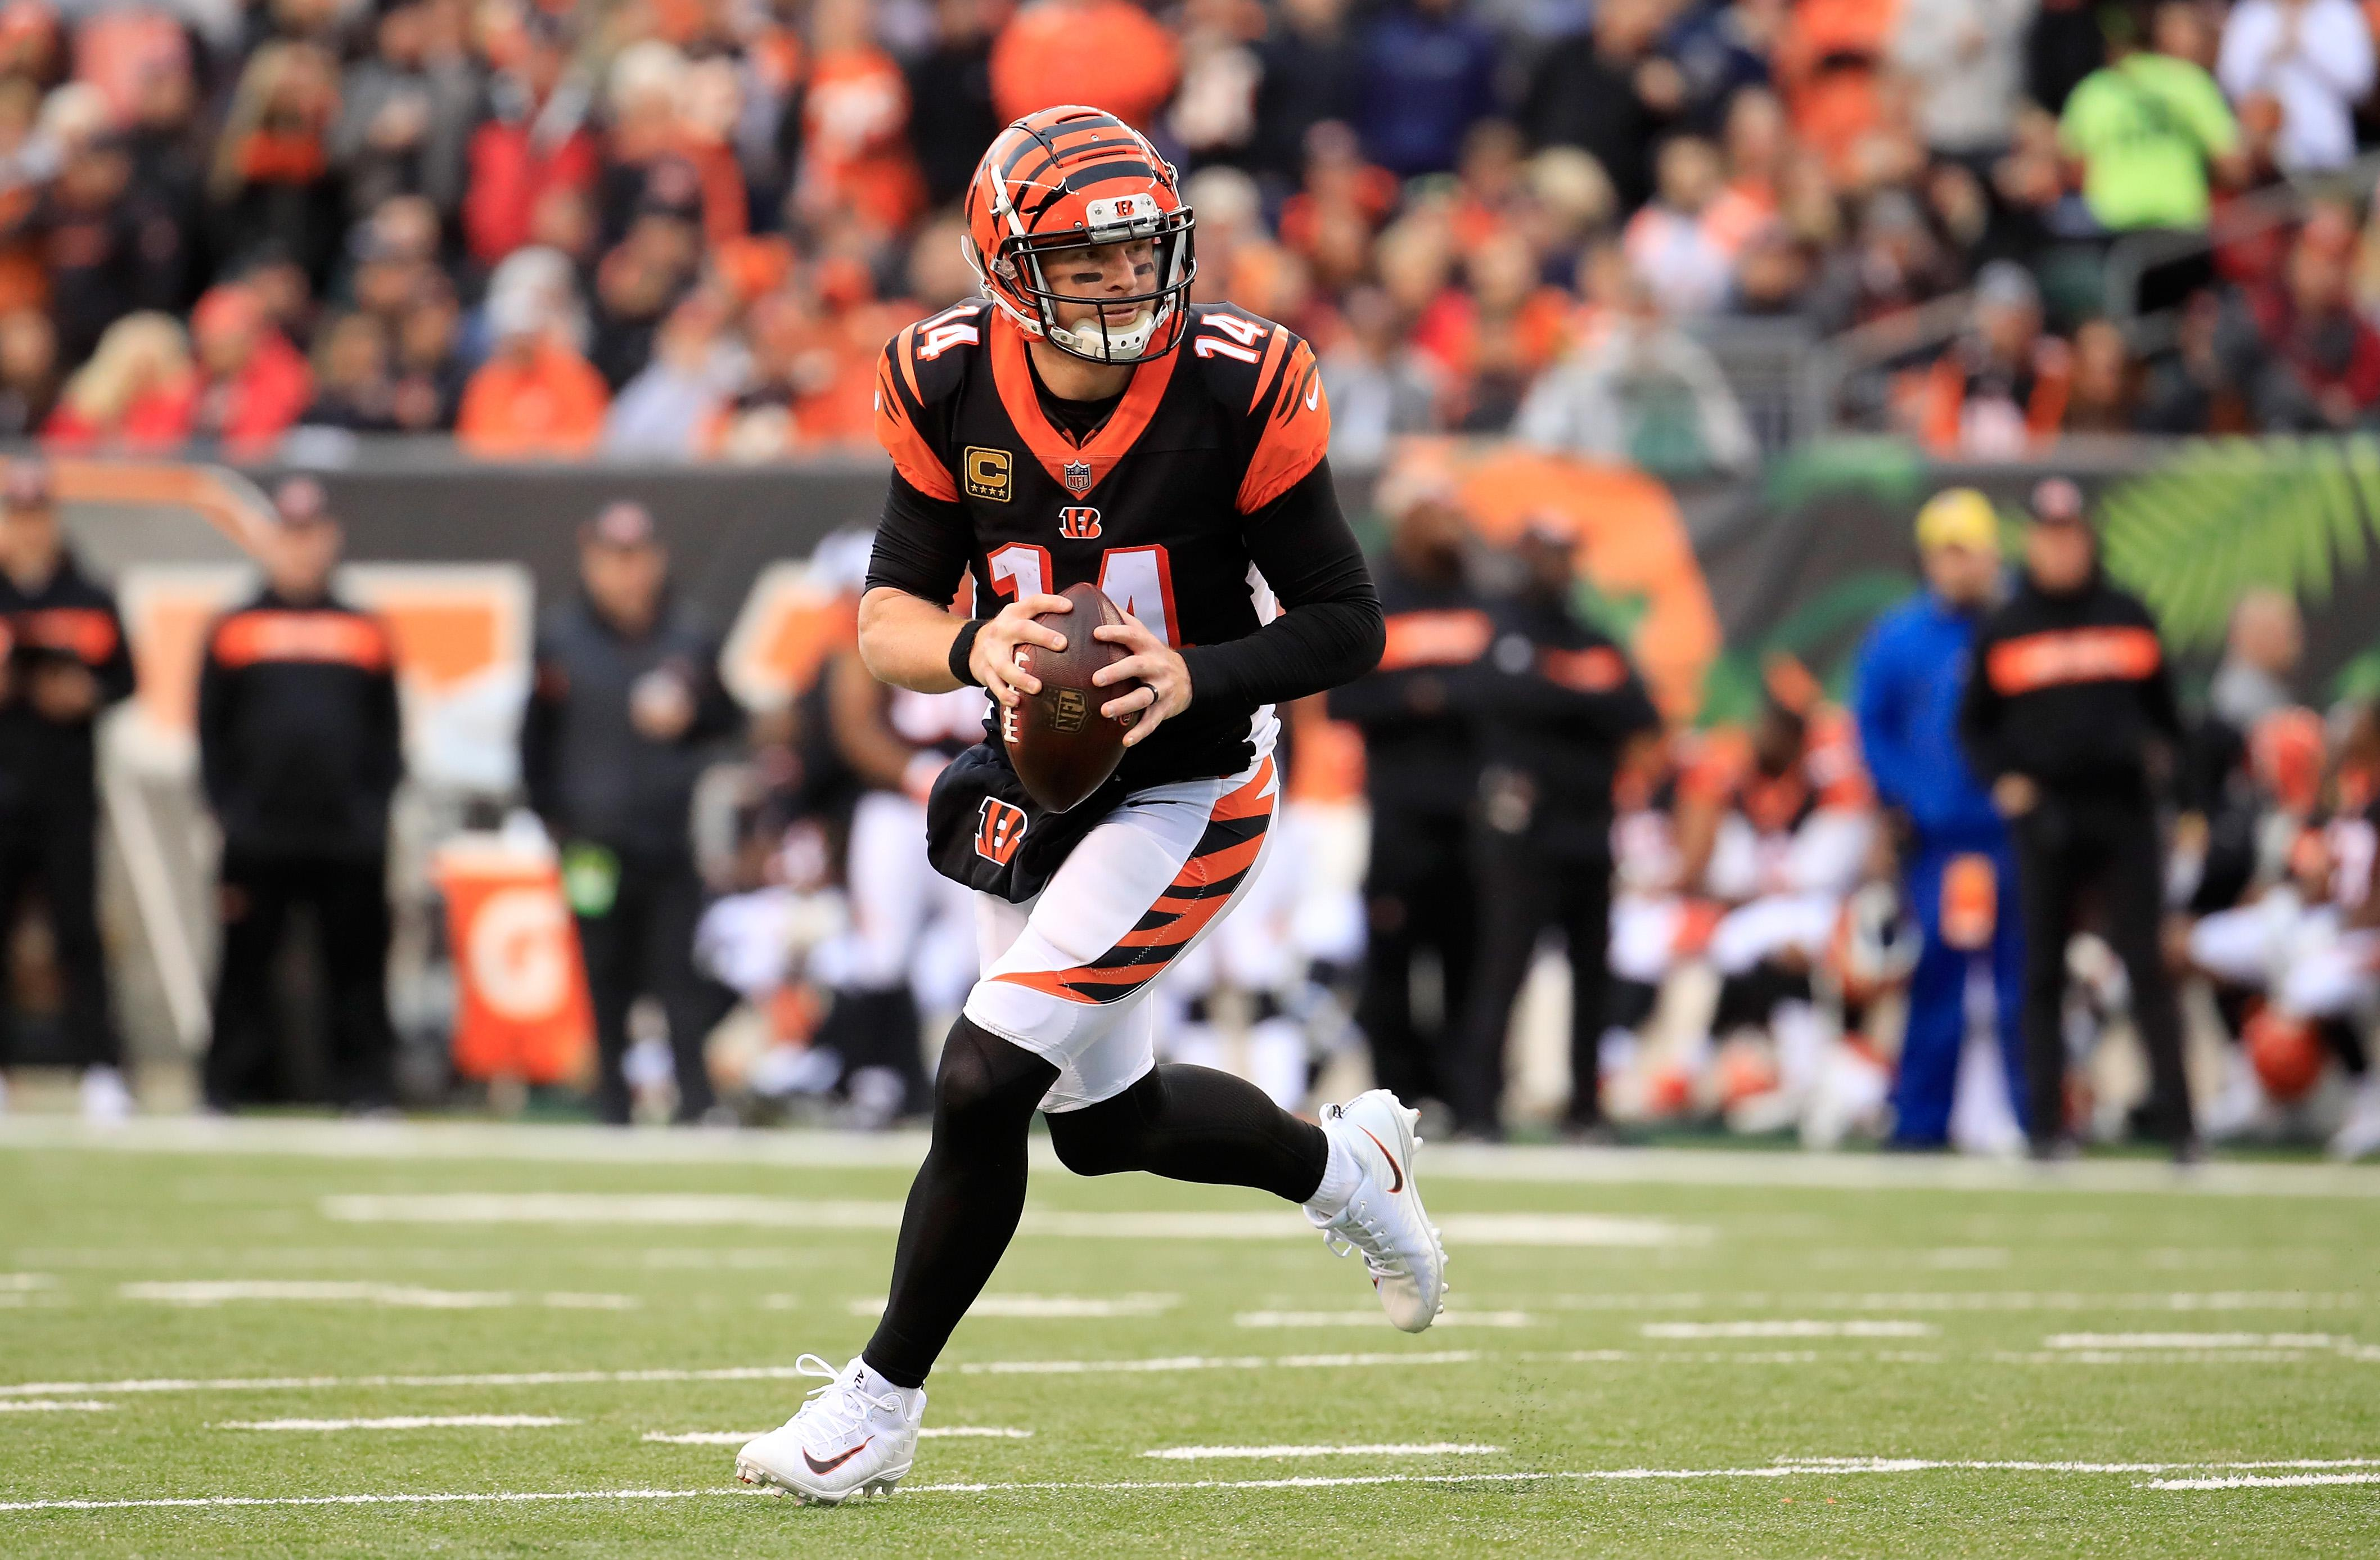 Cincinnati Bengals Vs Pittsburgh Steelers 2019 Prediction